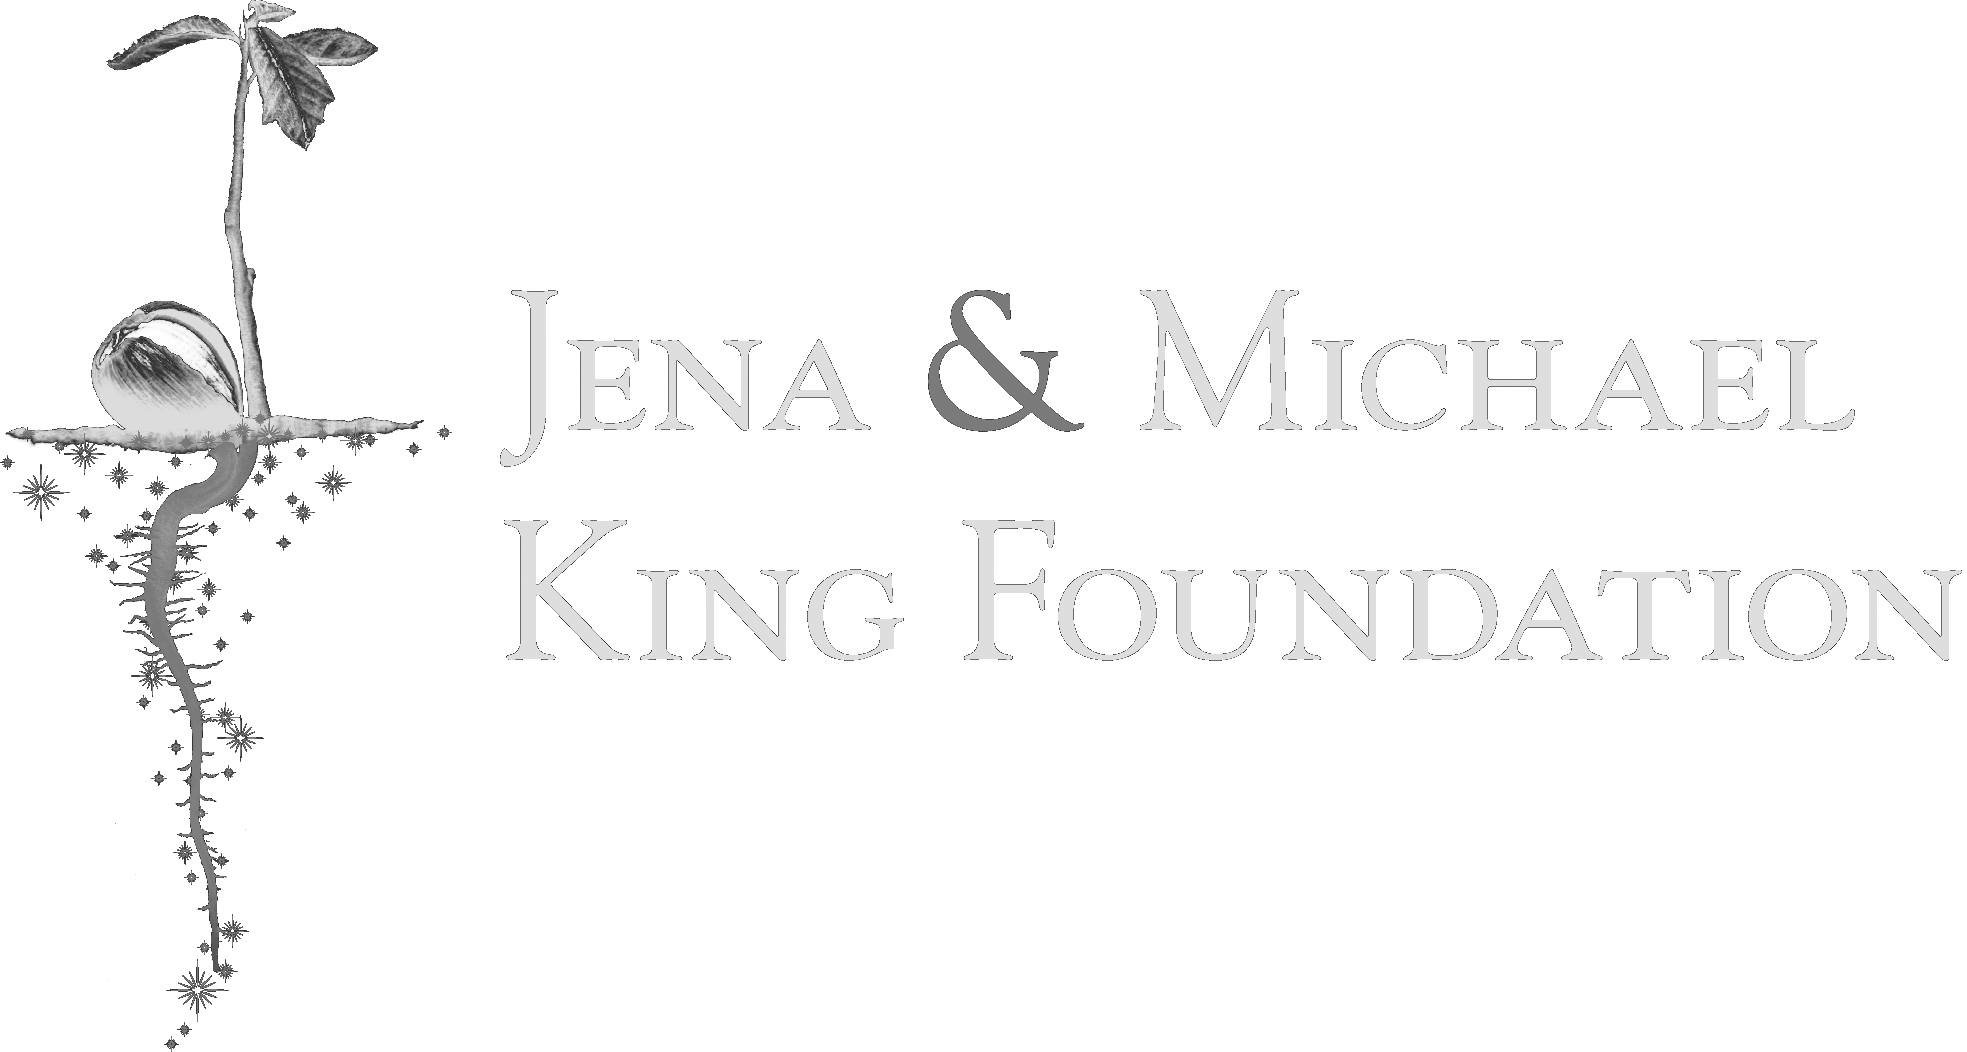 Jena & Michael King Foundation